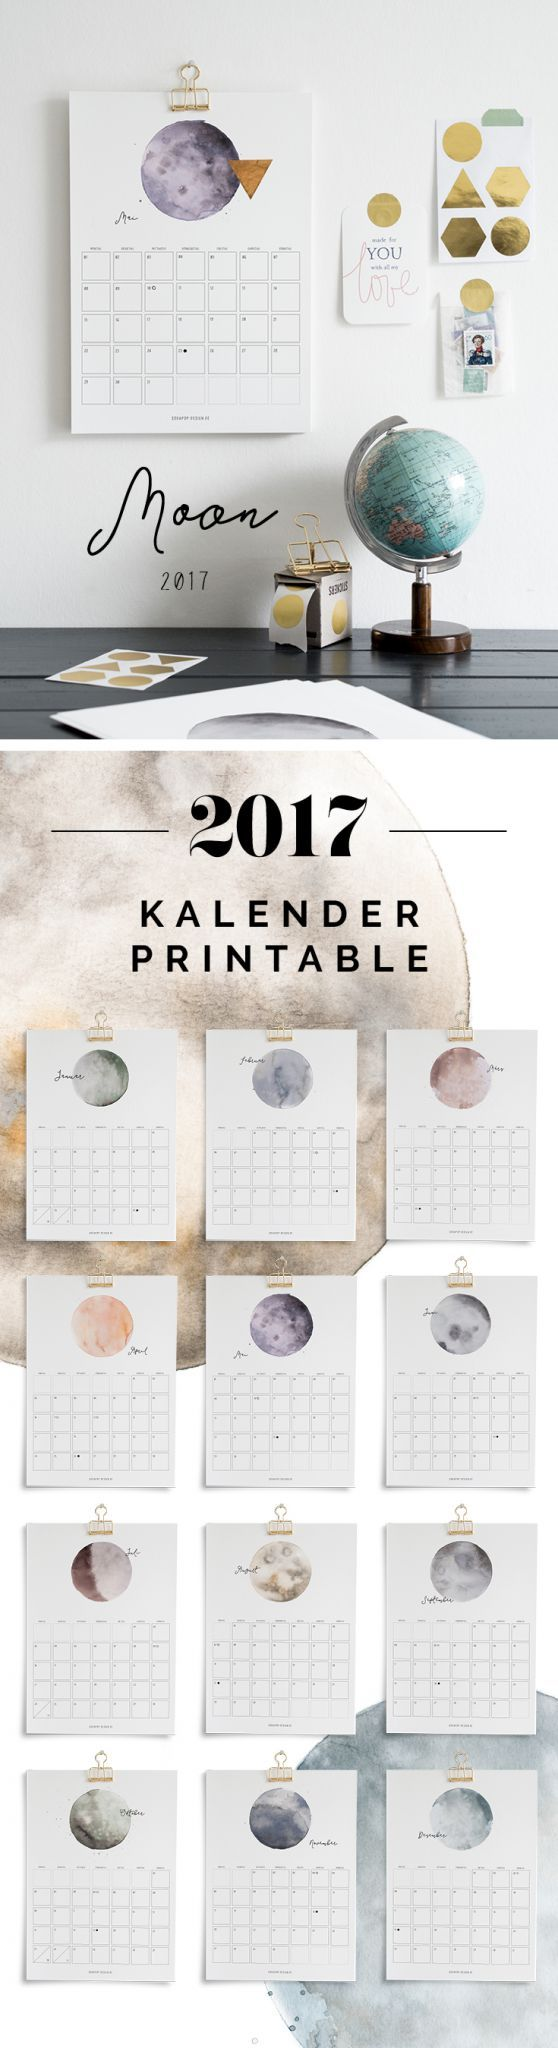 Printable Kalender | Calendar 2017 – via sodapop-design.de (Diy Room Tumblr)